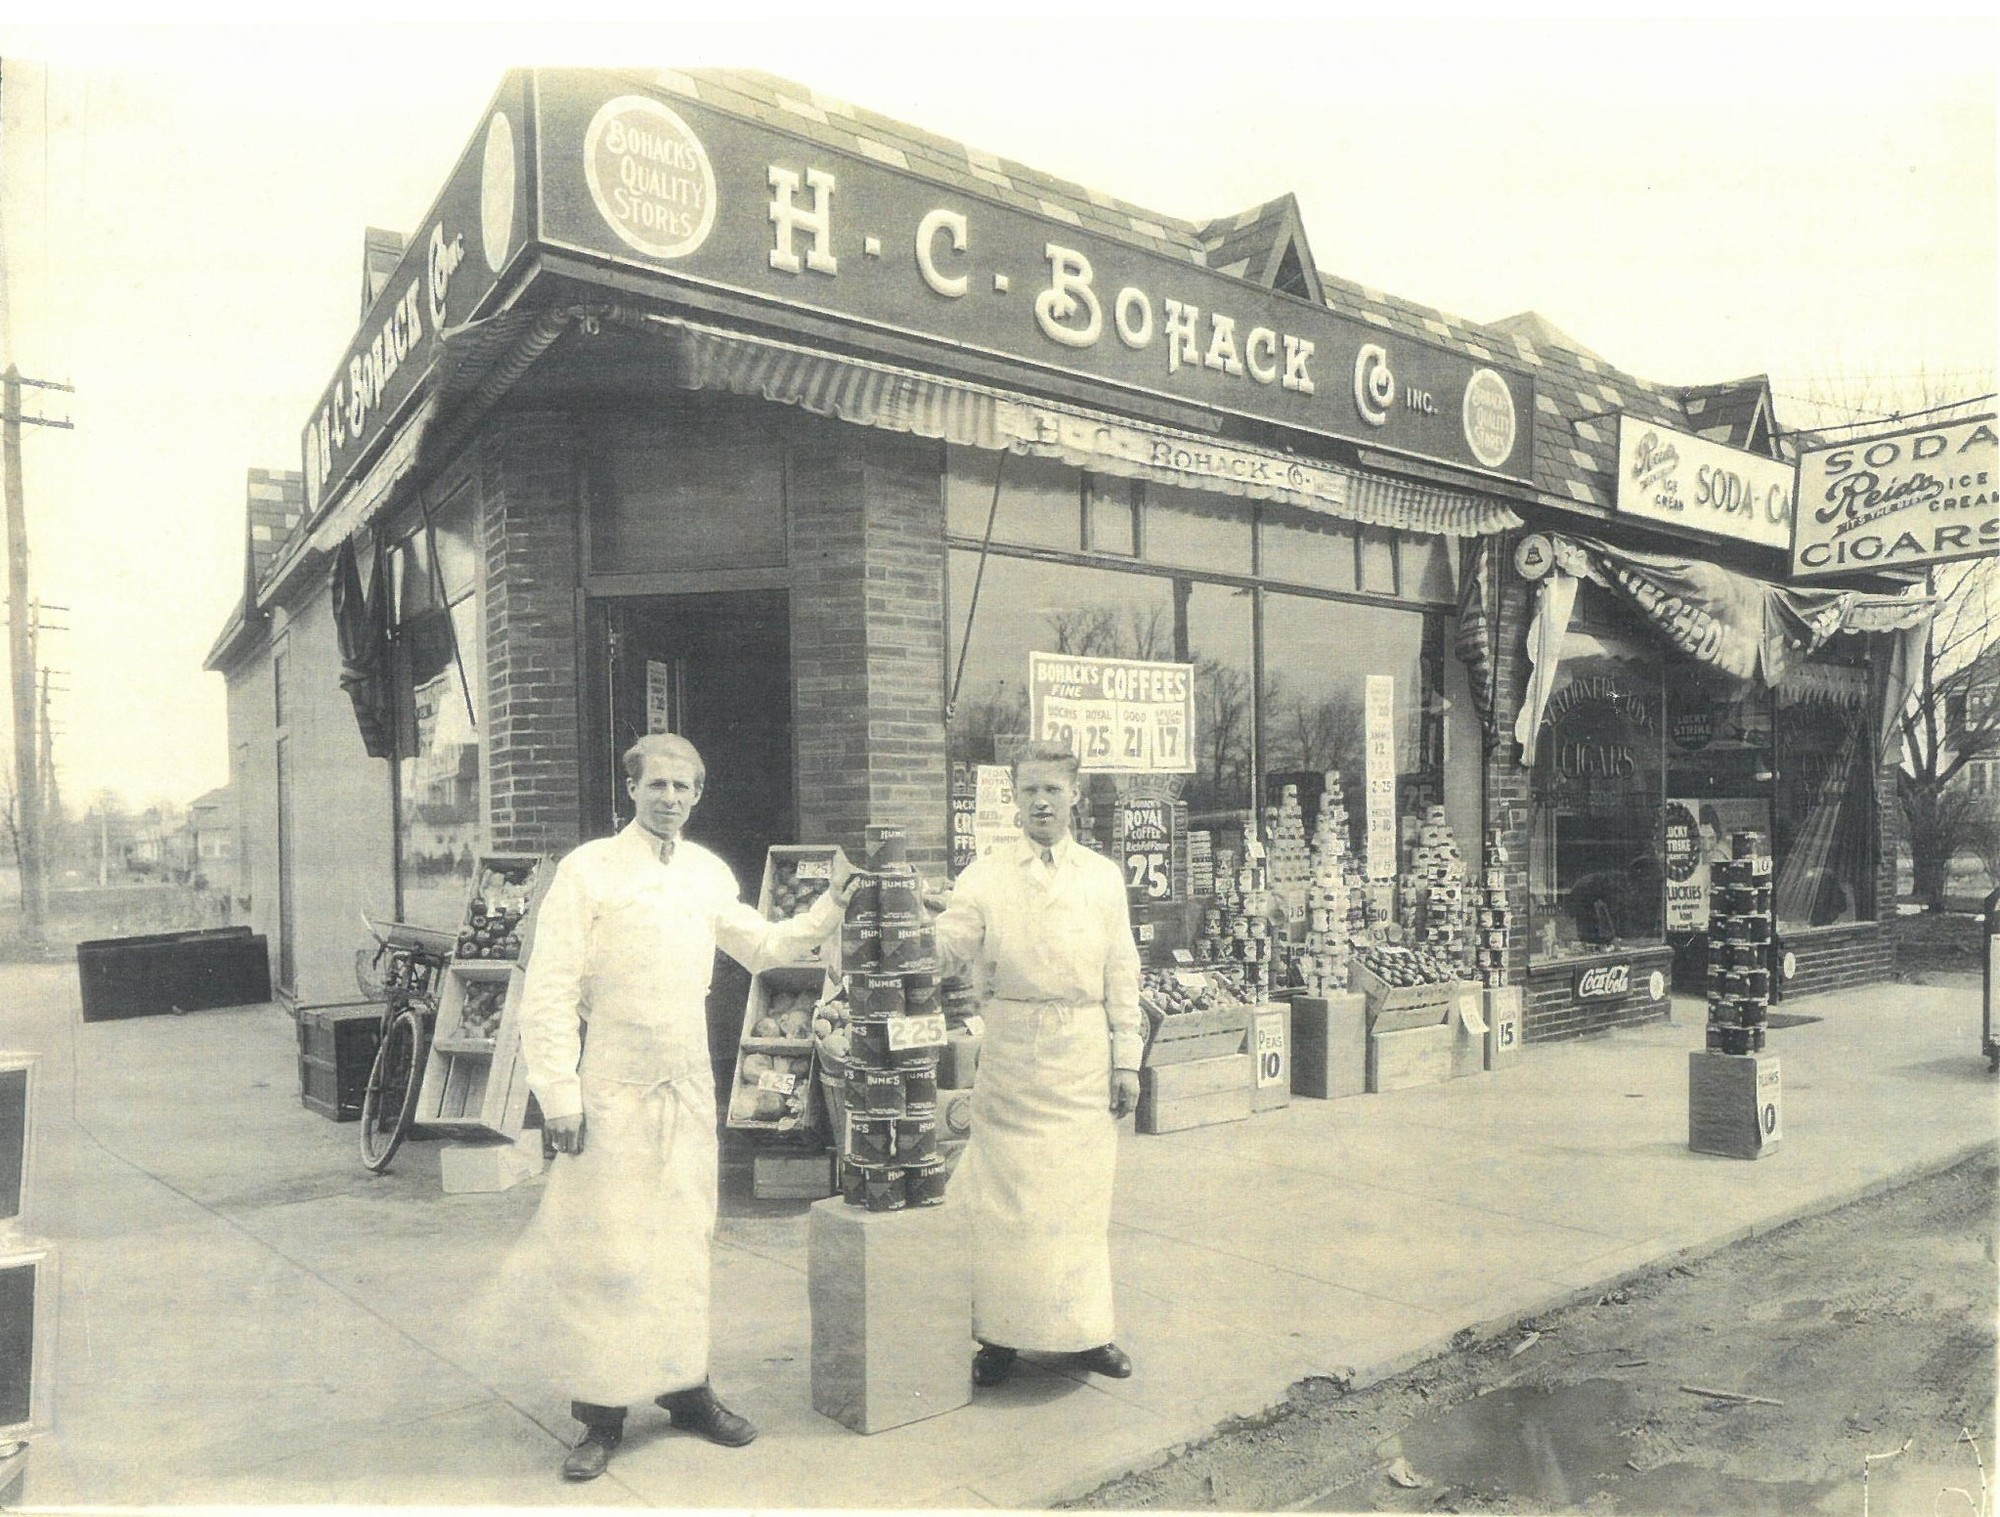 Through StoryCorps, Bellmorites are sharing their memories of Bellmore, including the shops on Bedford Avenue like Bohack's, pictured above in 1939.